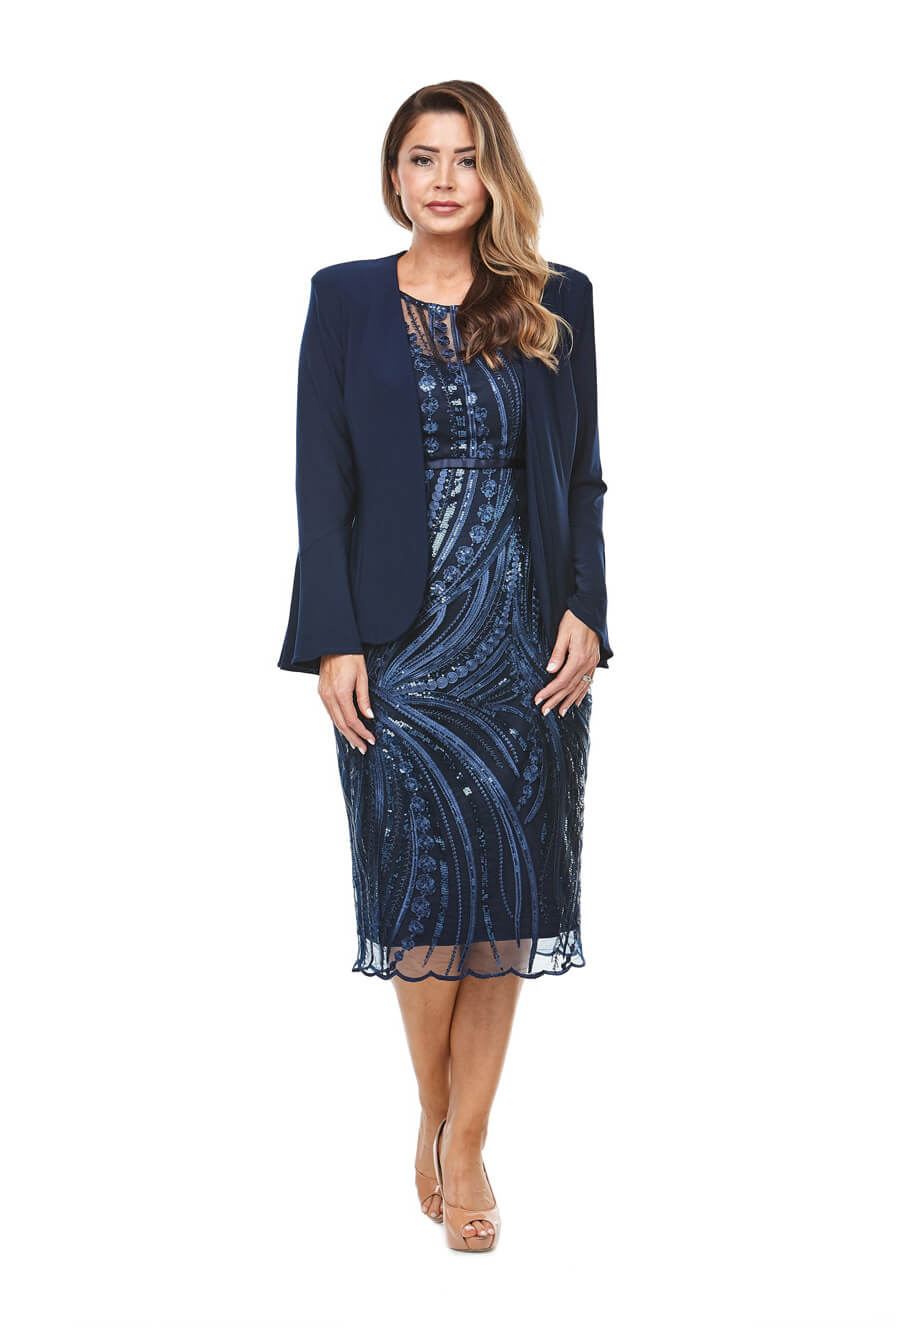 Embroidered sequin cocktail dress with sweetheart neckline, cap sleeve & tailored bell sleeve jacket